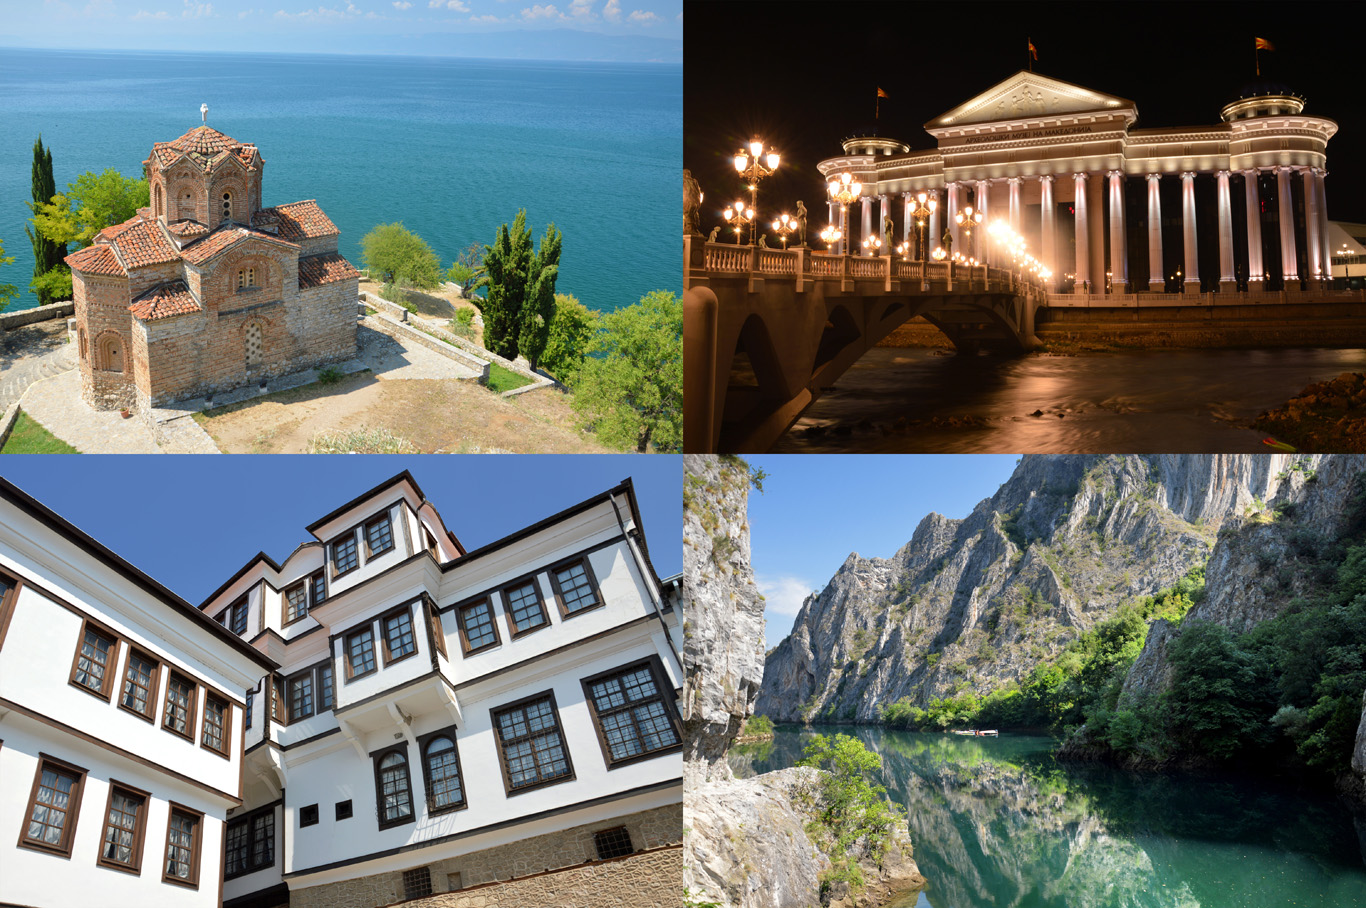 From top left: Lake Ohrid, the capital - Skopje, architecture in the town of Ohrid and Matka Canyon